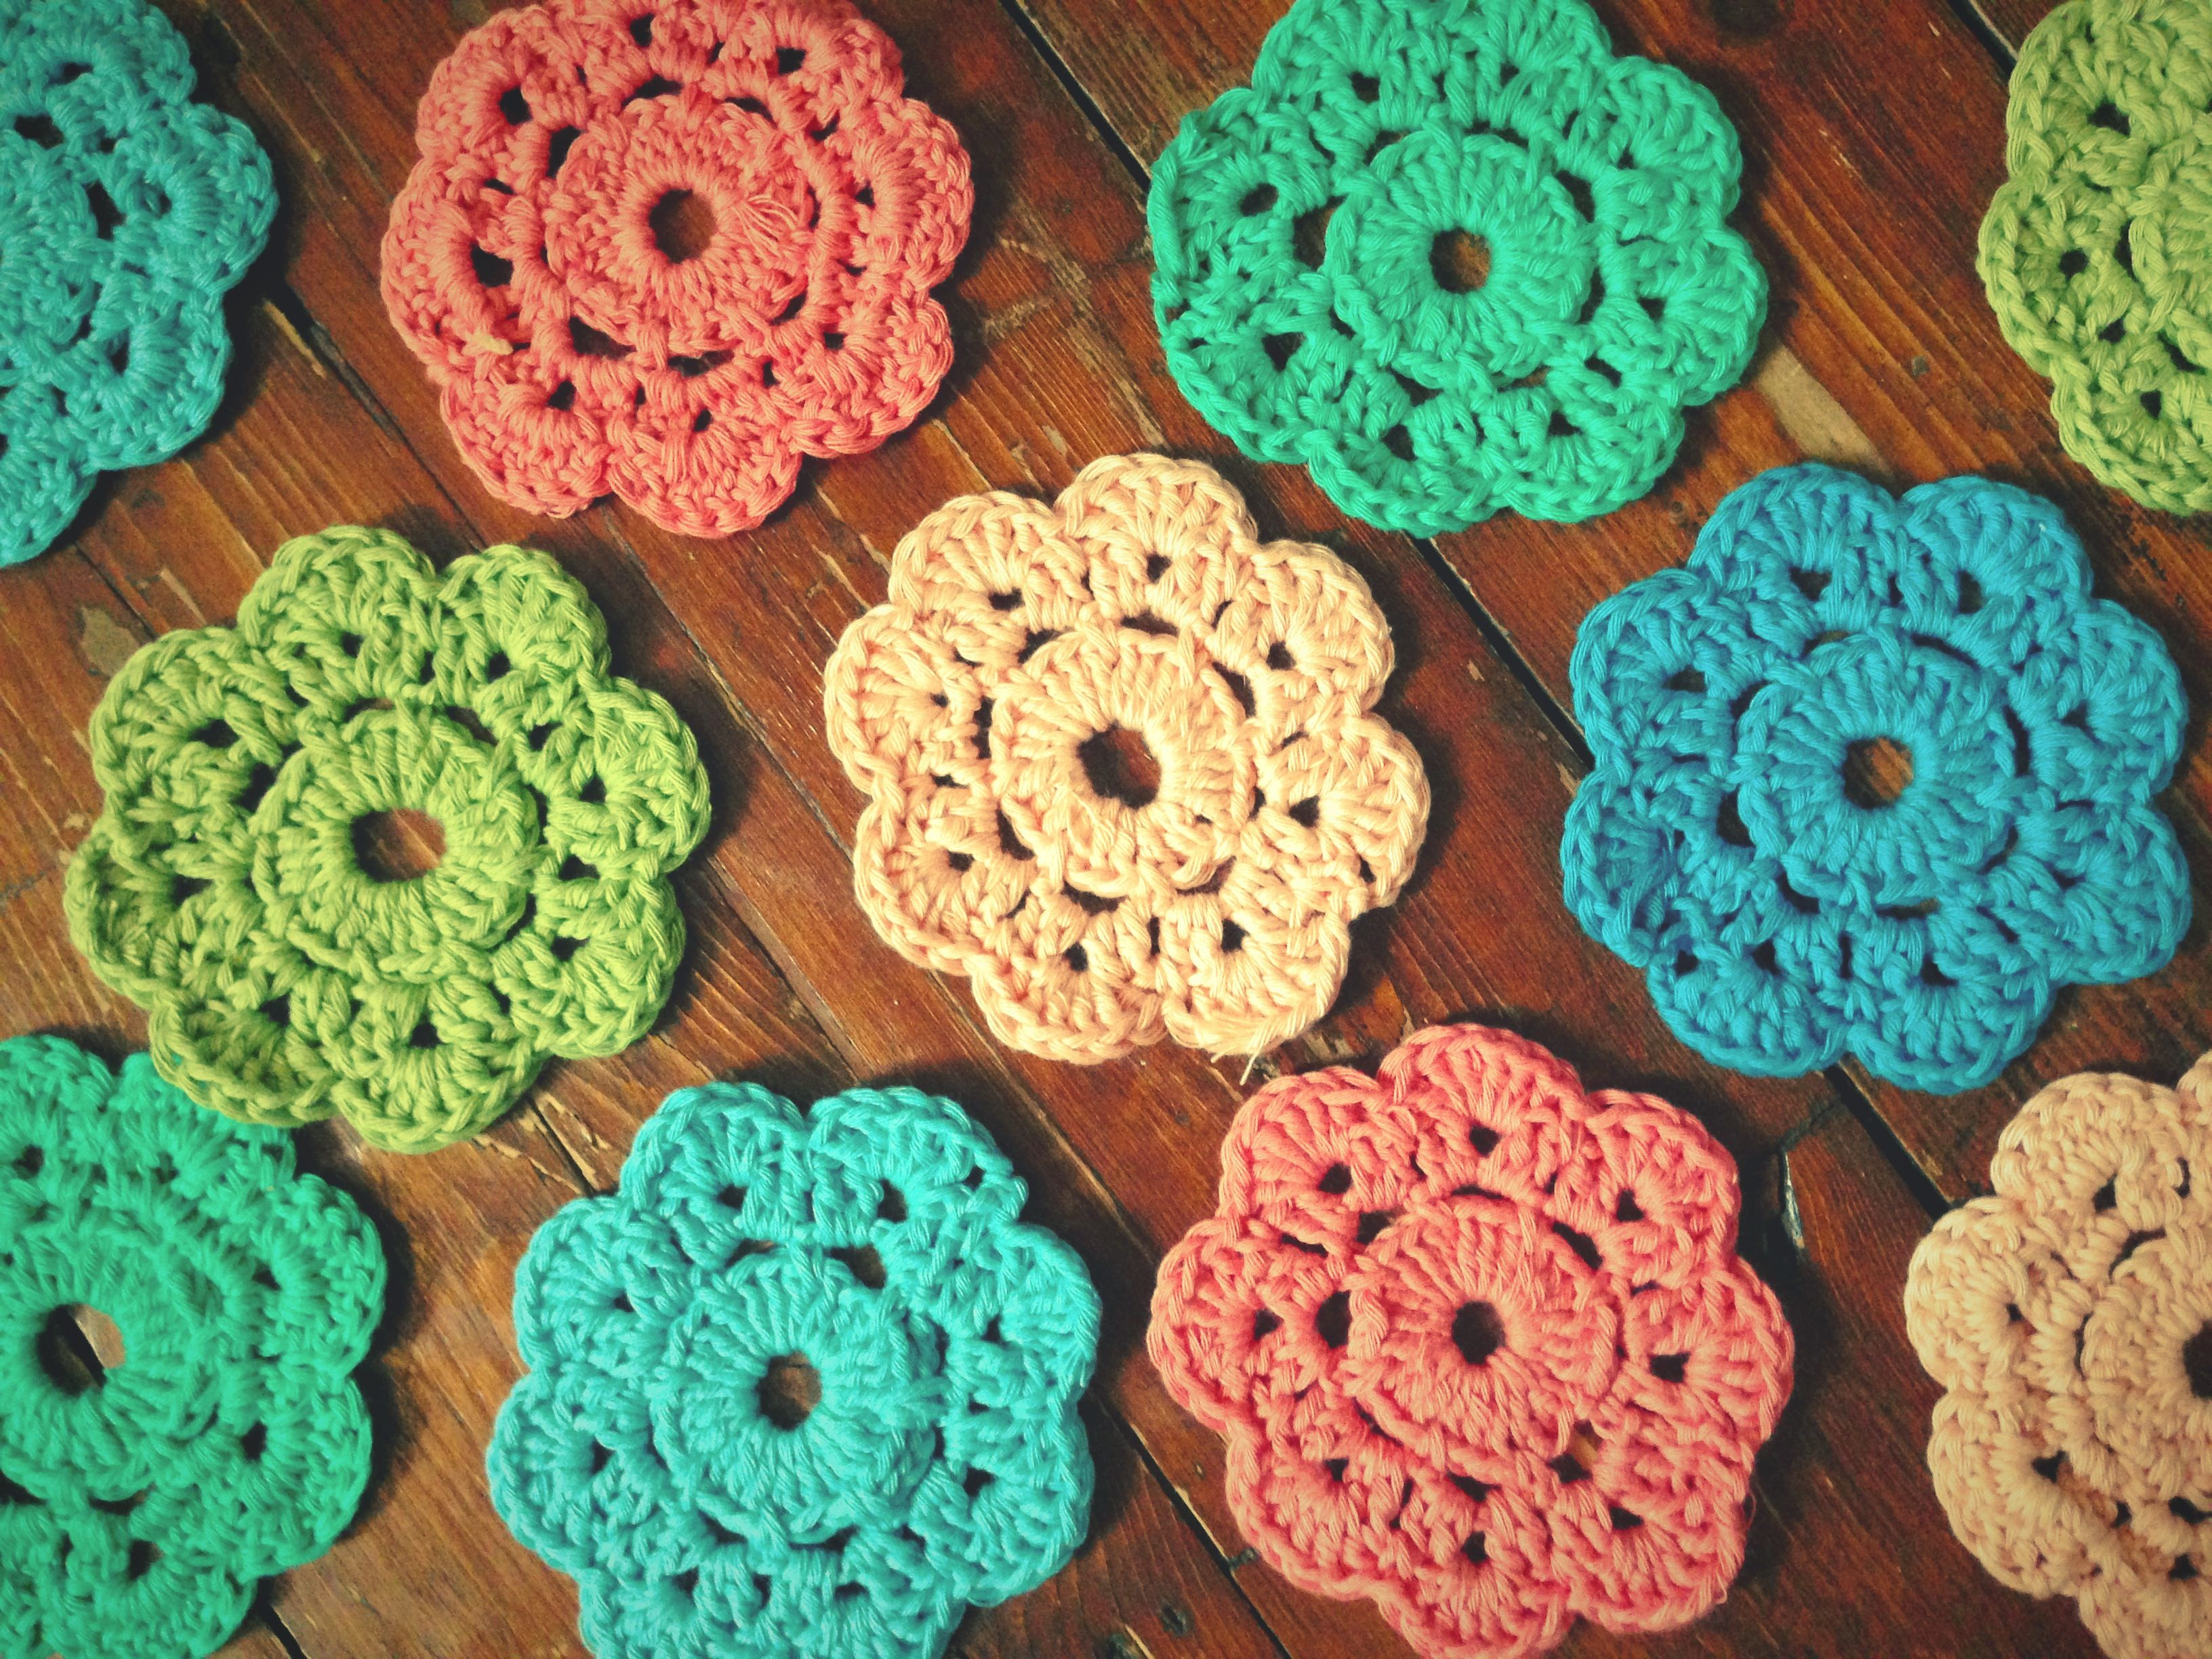 Maybelle crochet flowers i made this morning i love the colours maybelle crochet flowers i made this morning i love the colours theyre bankloansurffo Images